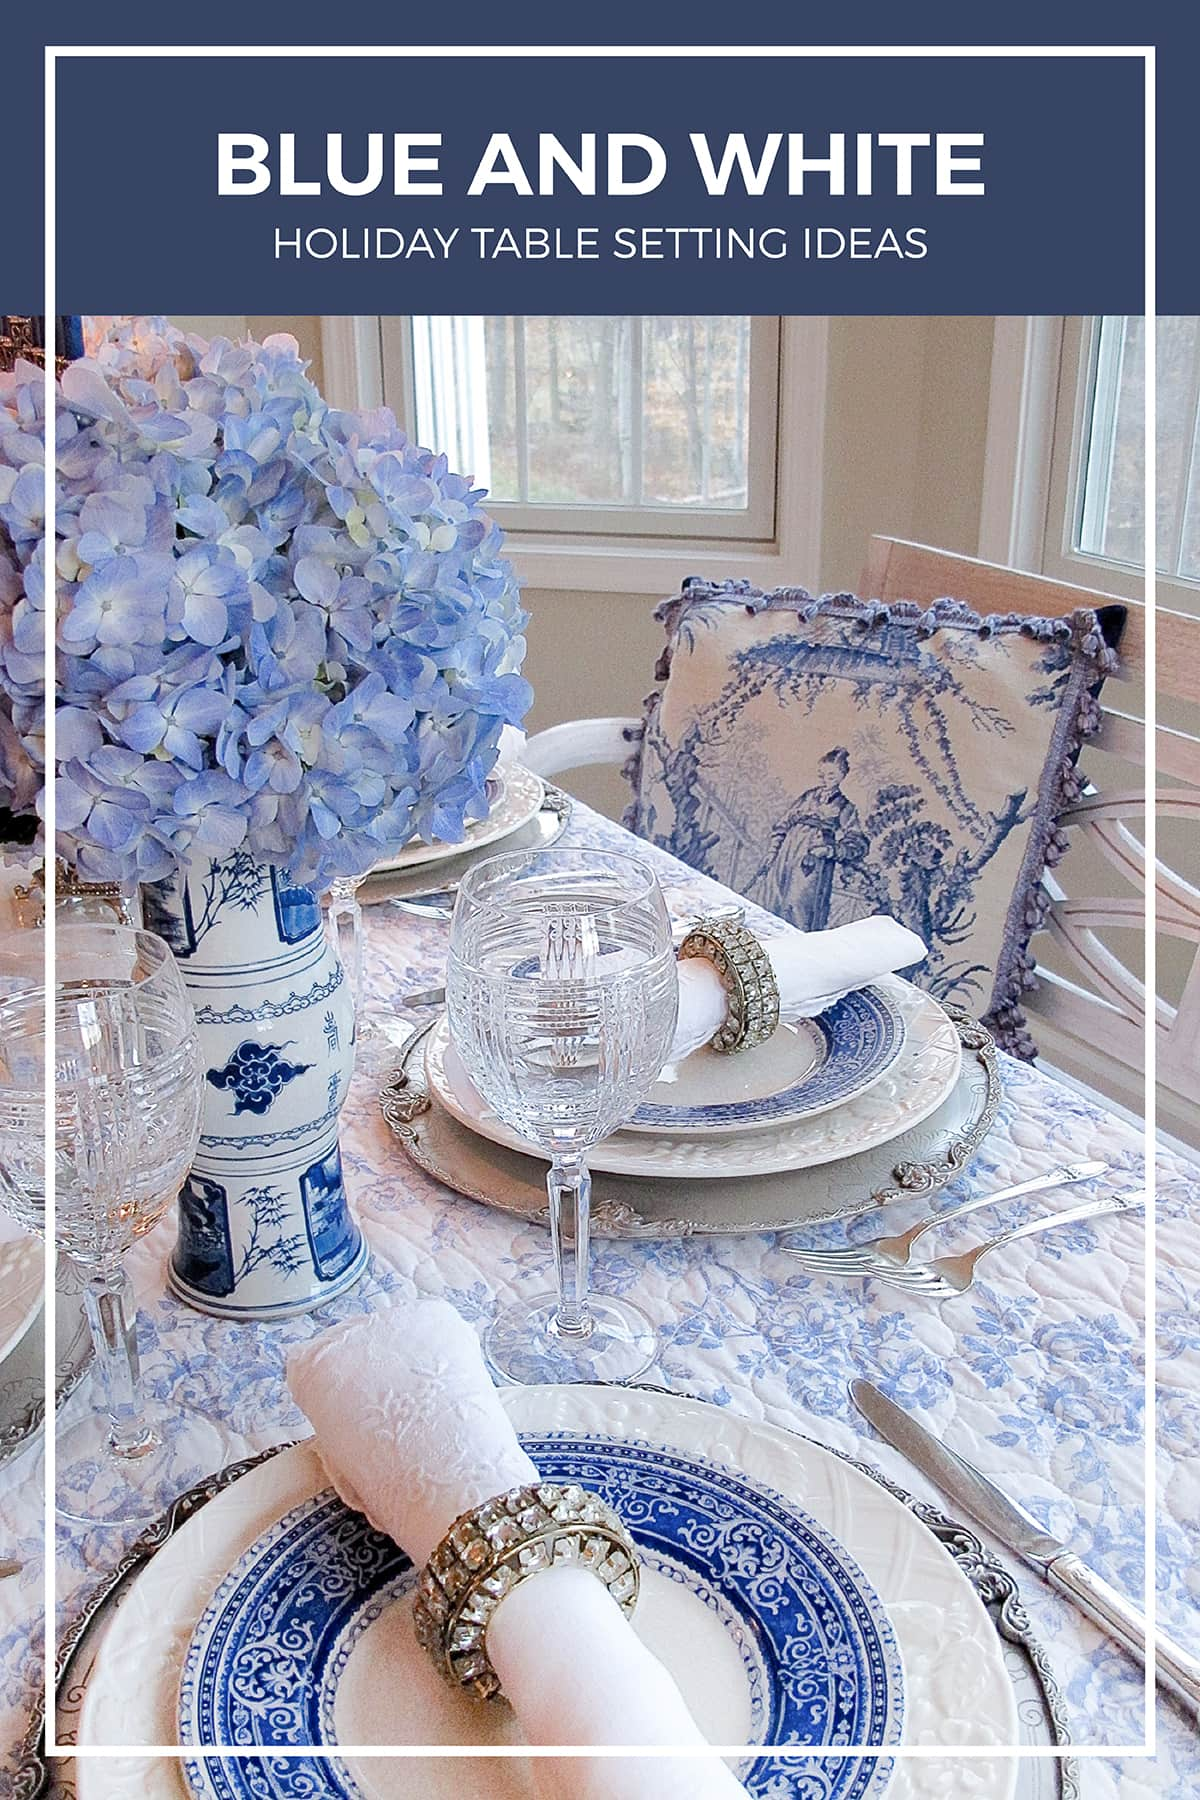 Blue and White Holiday Table Setting Ideas | Designthusiasm.com